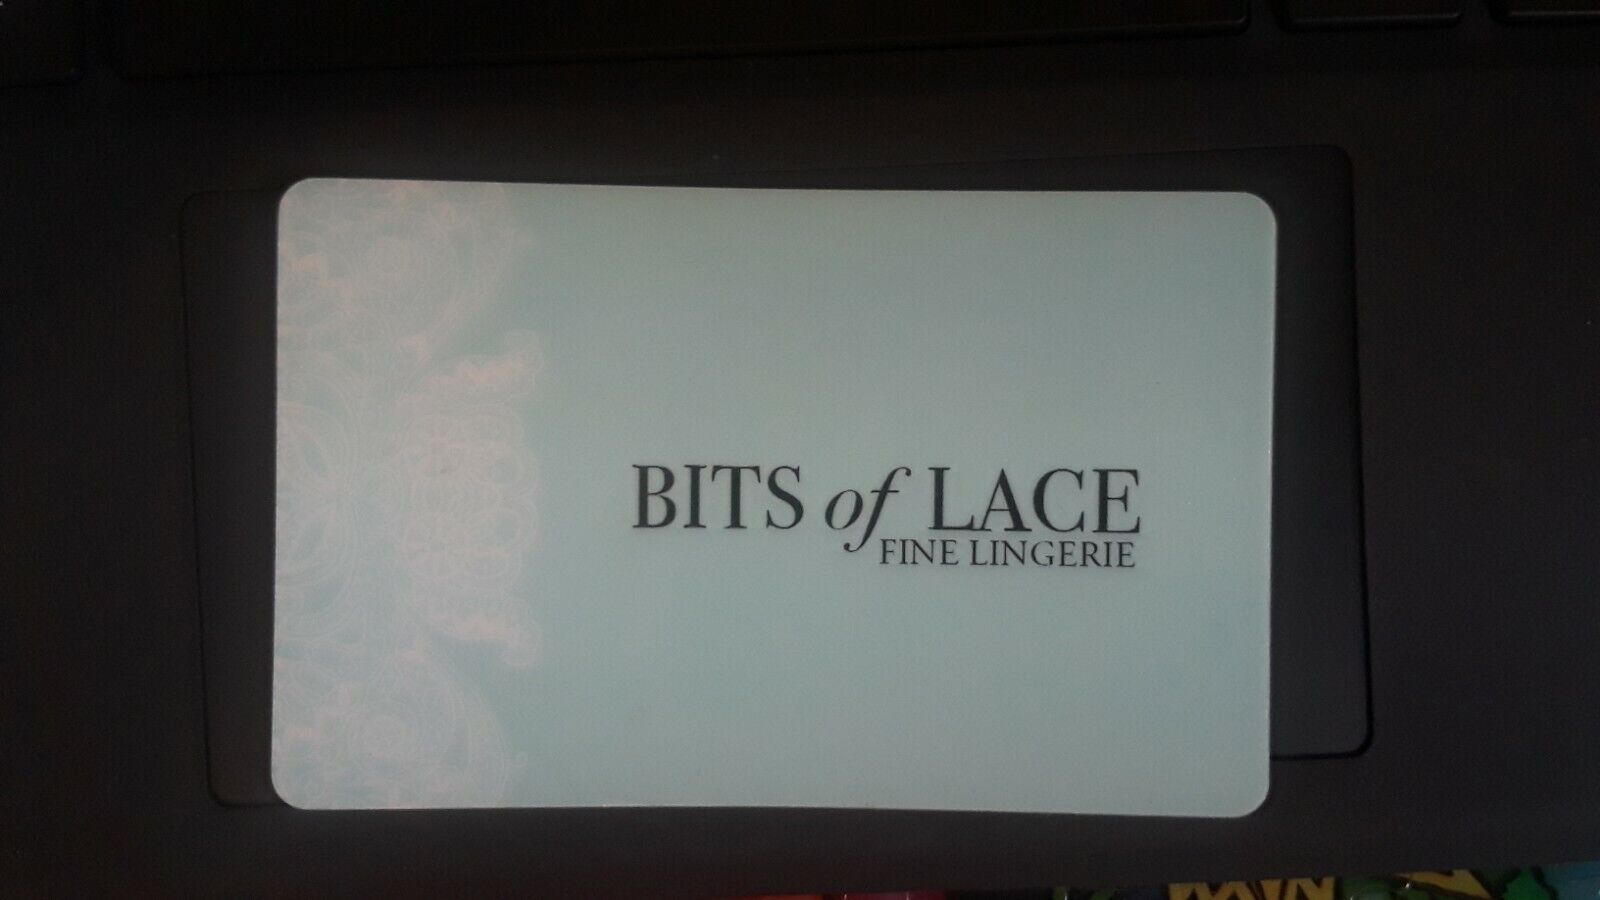 50 Bits Of Lace Gift Card - $35.00